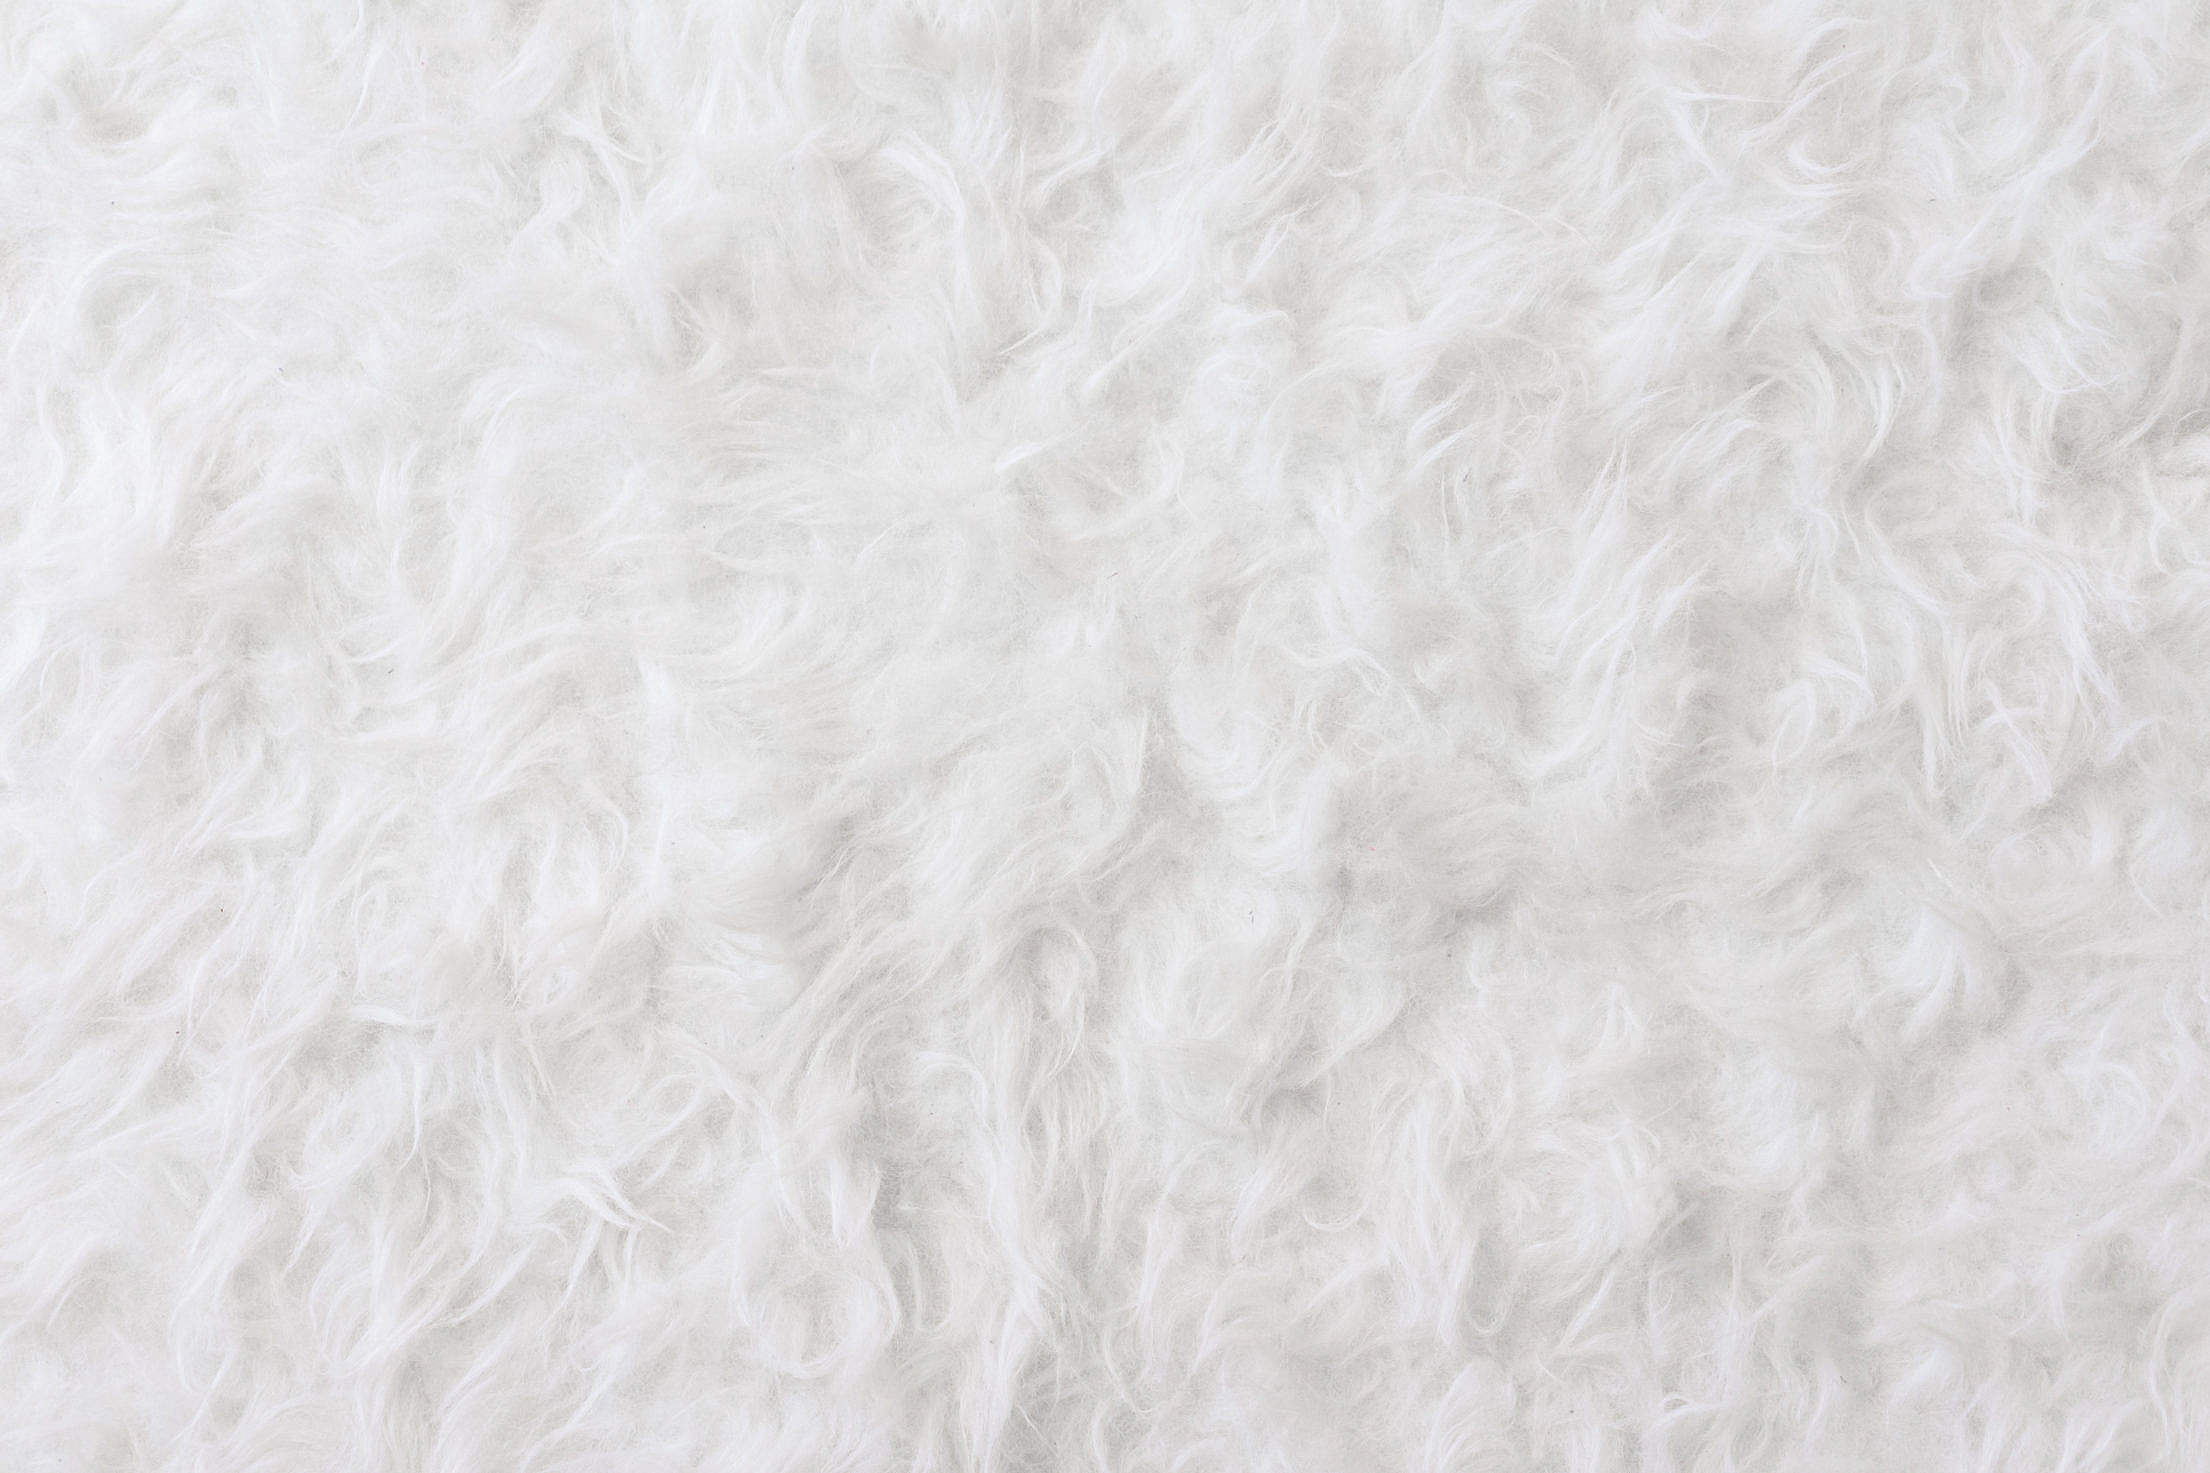 White Eco Fur Pattern Background Free Stock Photo